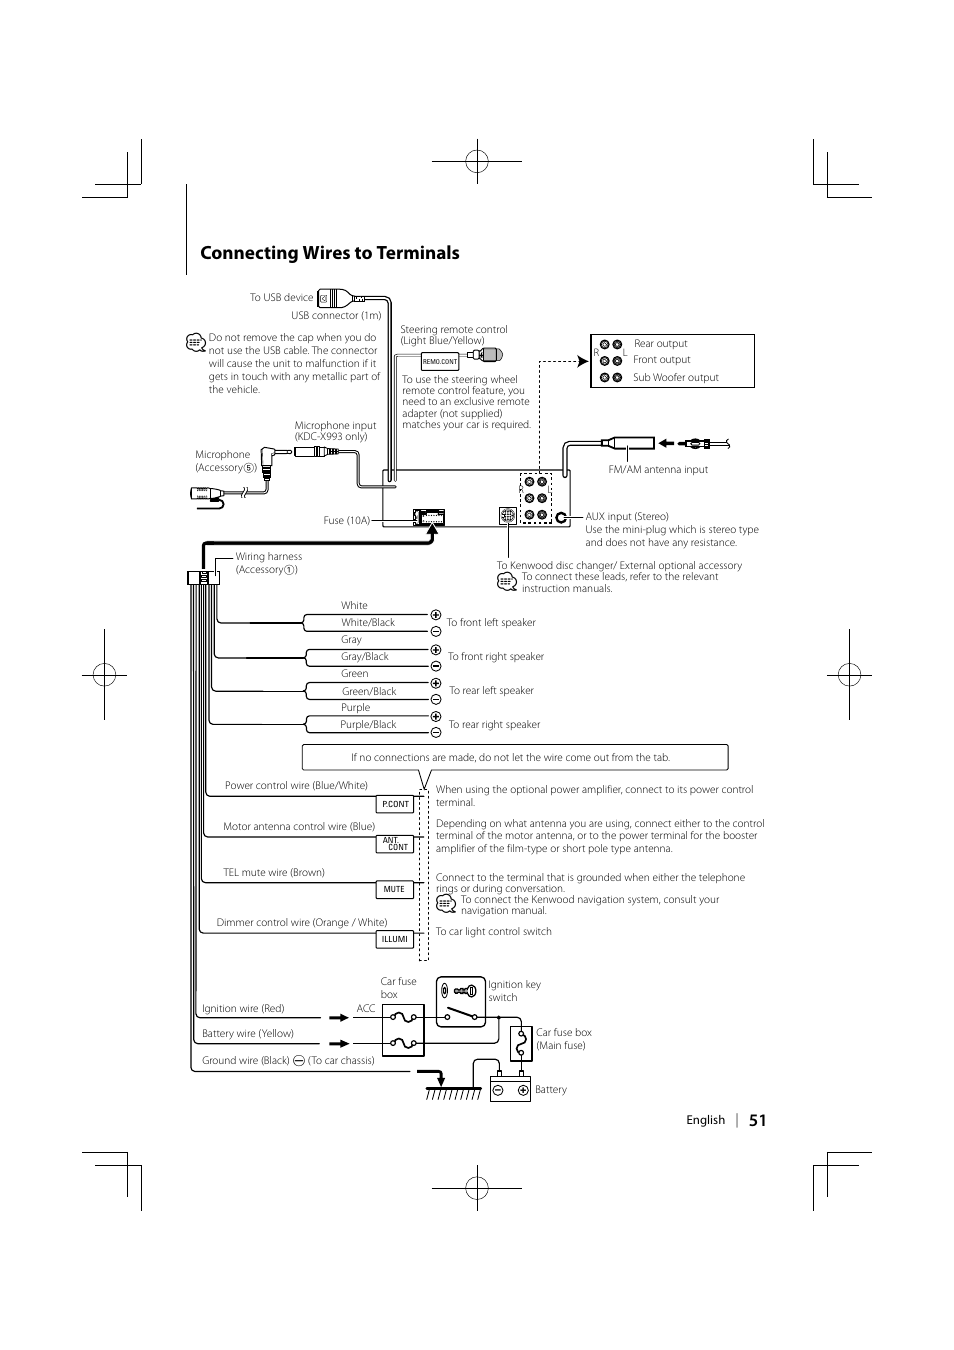 Connecting wires to terminals | Kenwood KDC-MP642U User Manual | Page 51 /  60